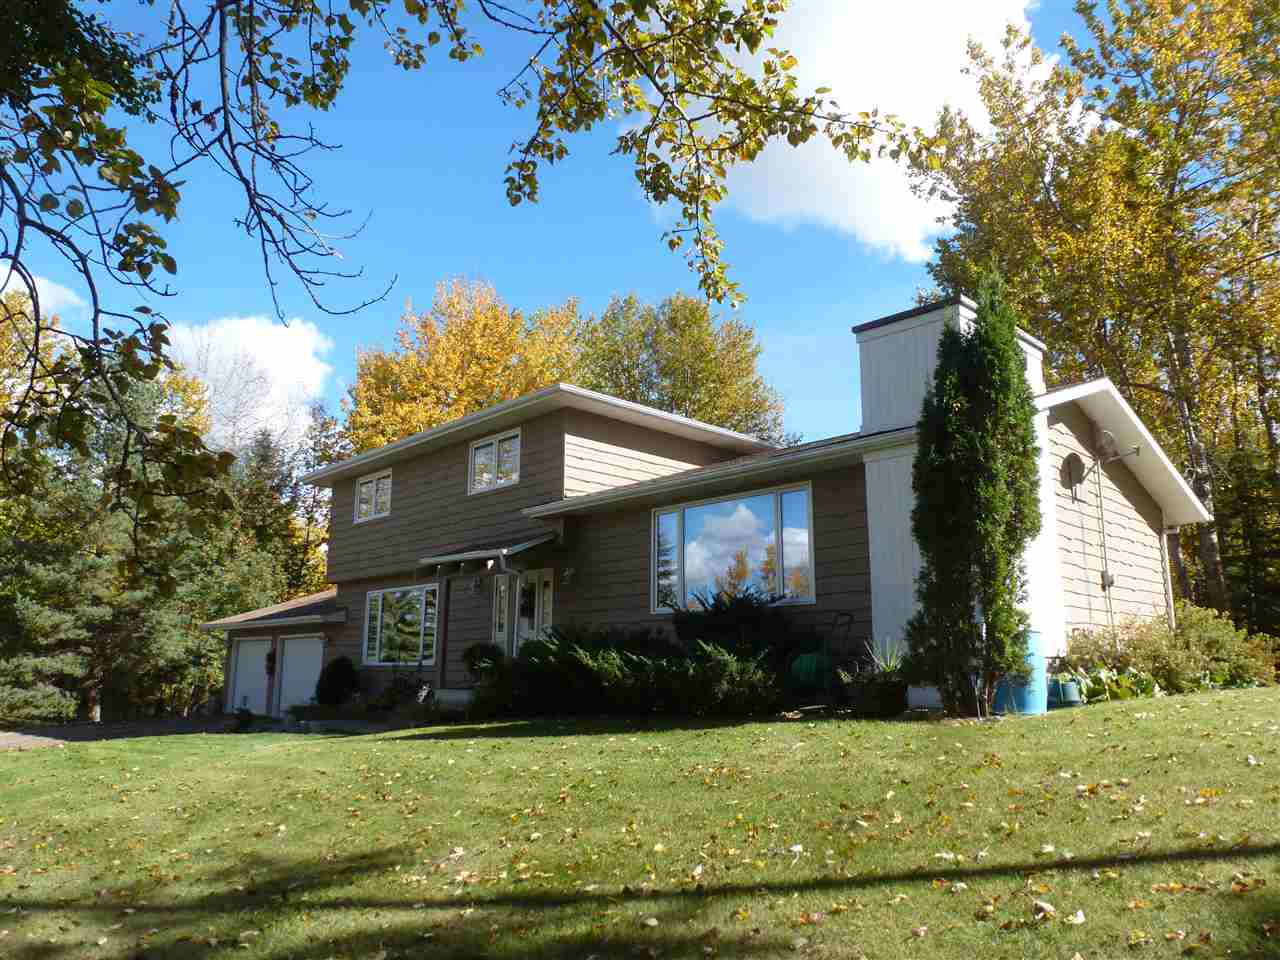 2-Storey w/Basement(1978) - Shows 10+!  A very nice 2000+ Sq Ft renovated Country Home on 3.12 landscaped treed acres situated a mere 10 minutes East of Sherwood Park. Features include a total of 4 Bedrooms, including Master w/Ensuite, Walk-In Closet & Balcony, 2.5 Bathrooms, Kitchen w/Dinette, Formal Dining Room, spacious Living Room w/NG Corner Fireplace, plus Family/Rec Room. And a Double Attached Garage and Deck/Patio overlooking a creek and landscaped back yard! Quick Possession Available!